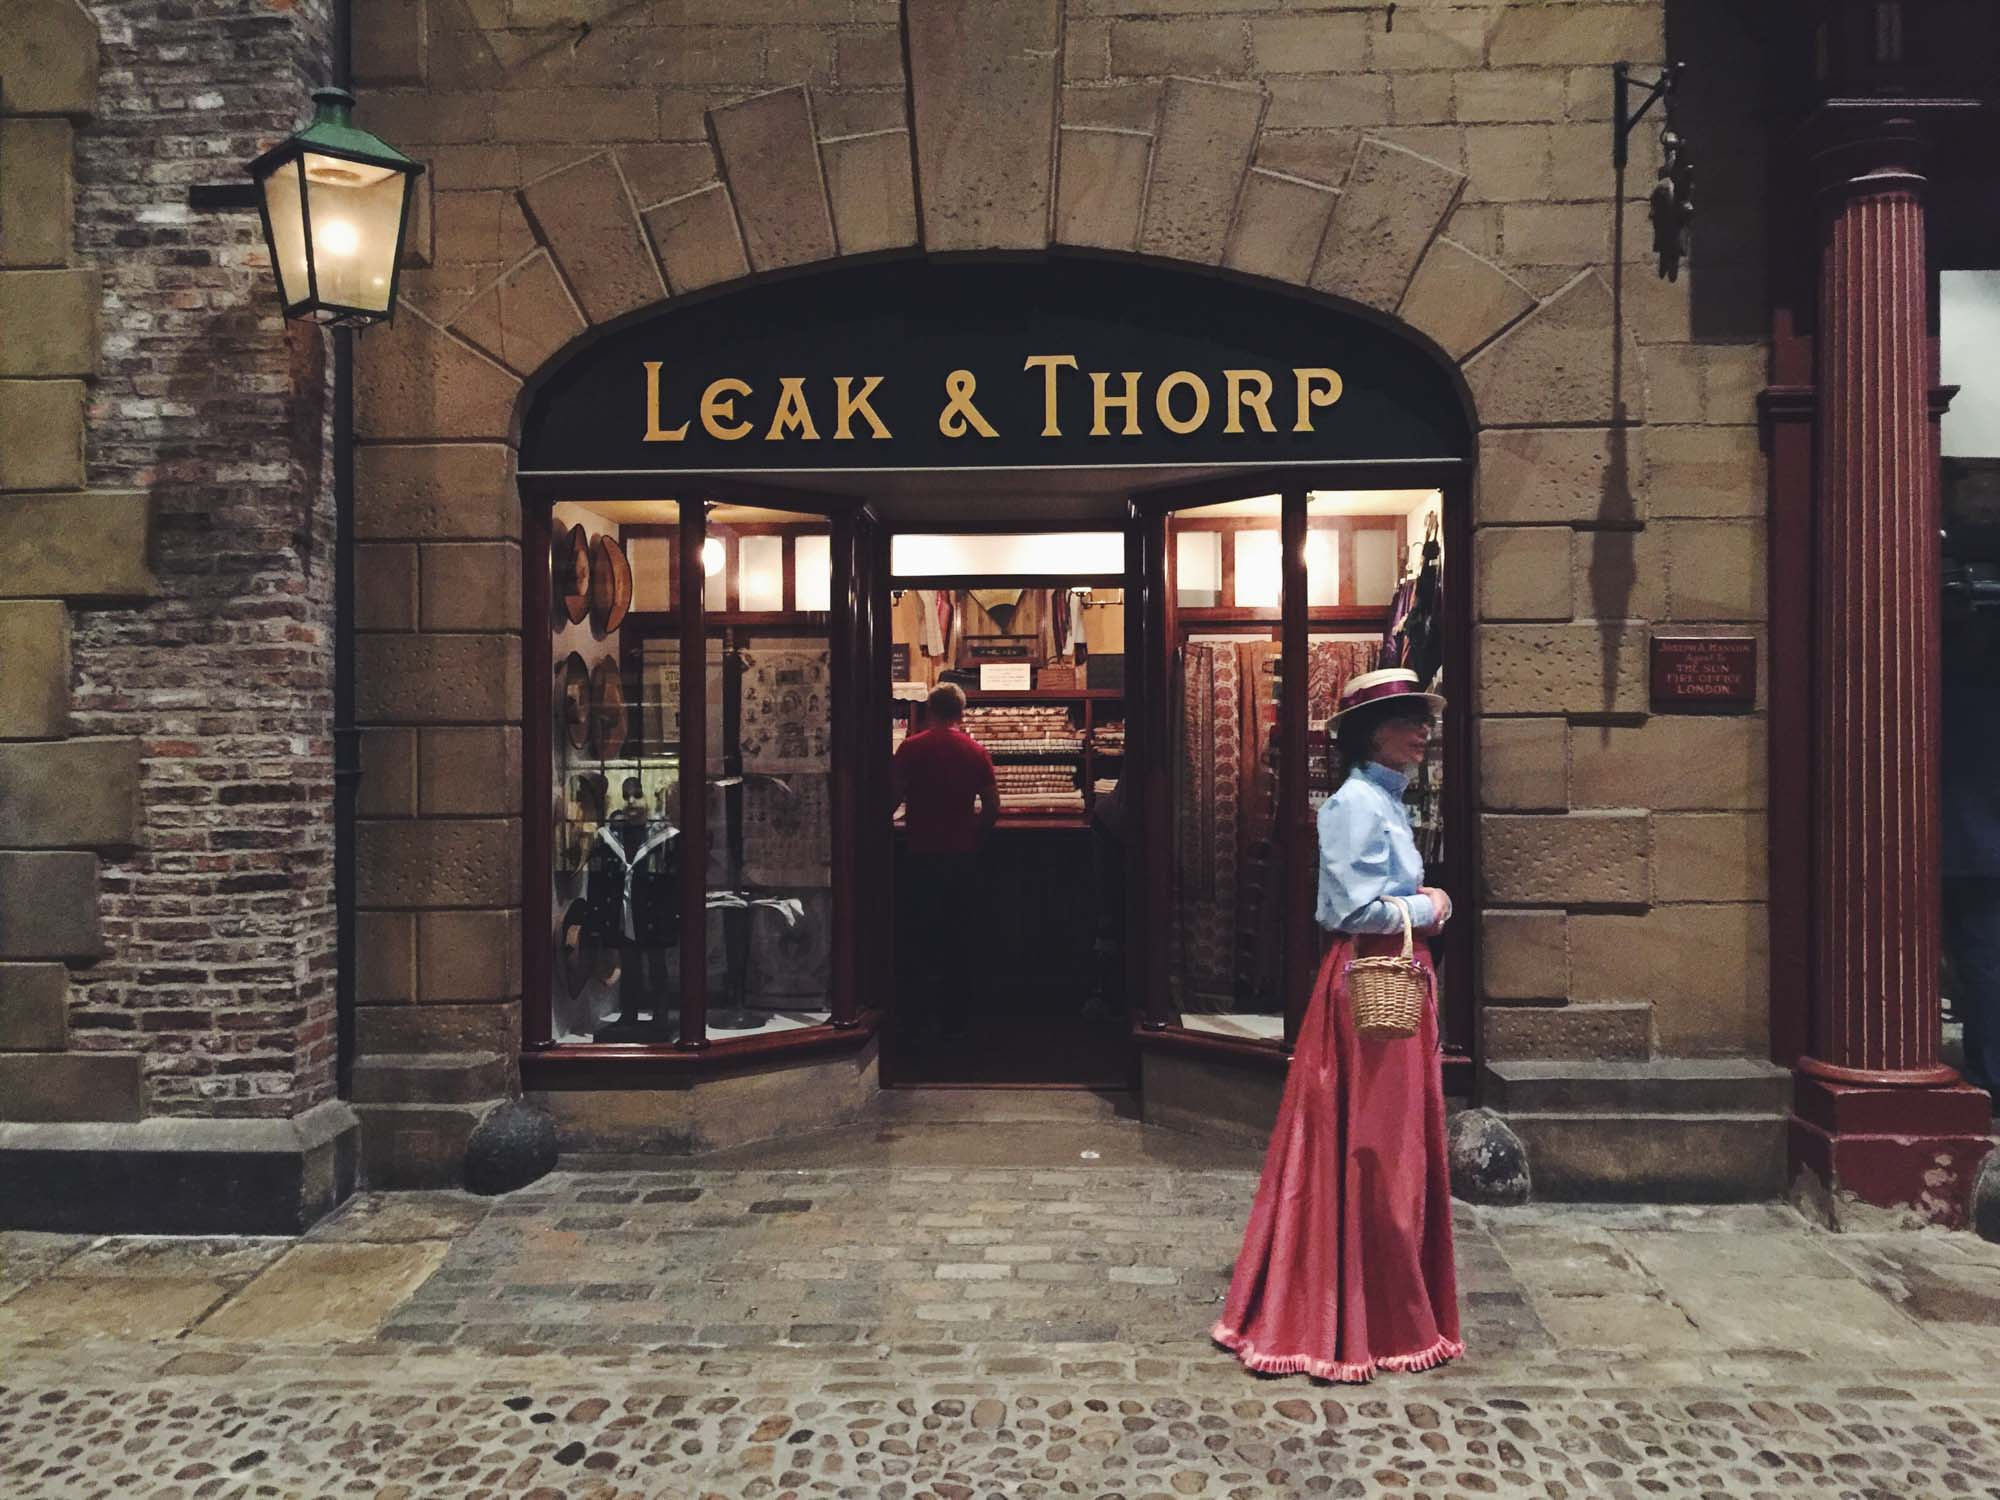 Best things to do in York - York Castle Museum